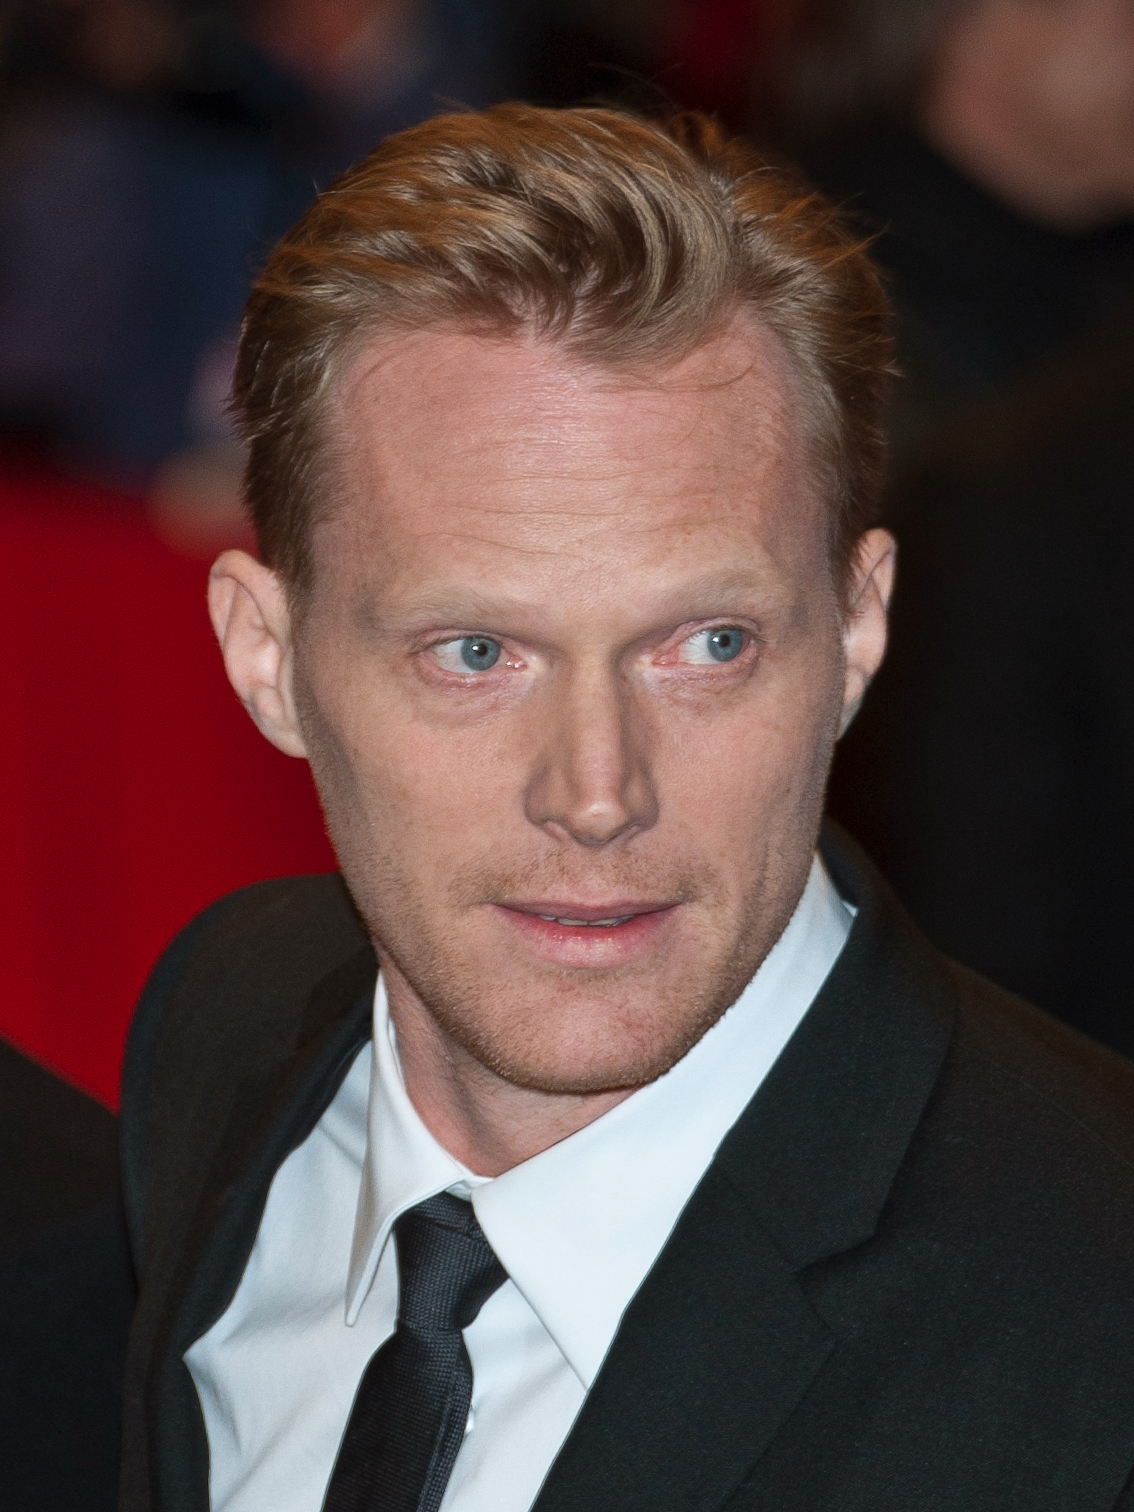 pics Paul Bettany (born 1971)